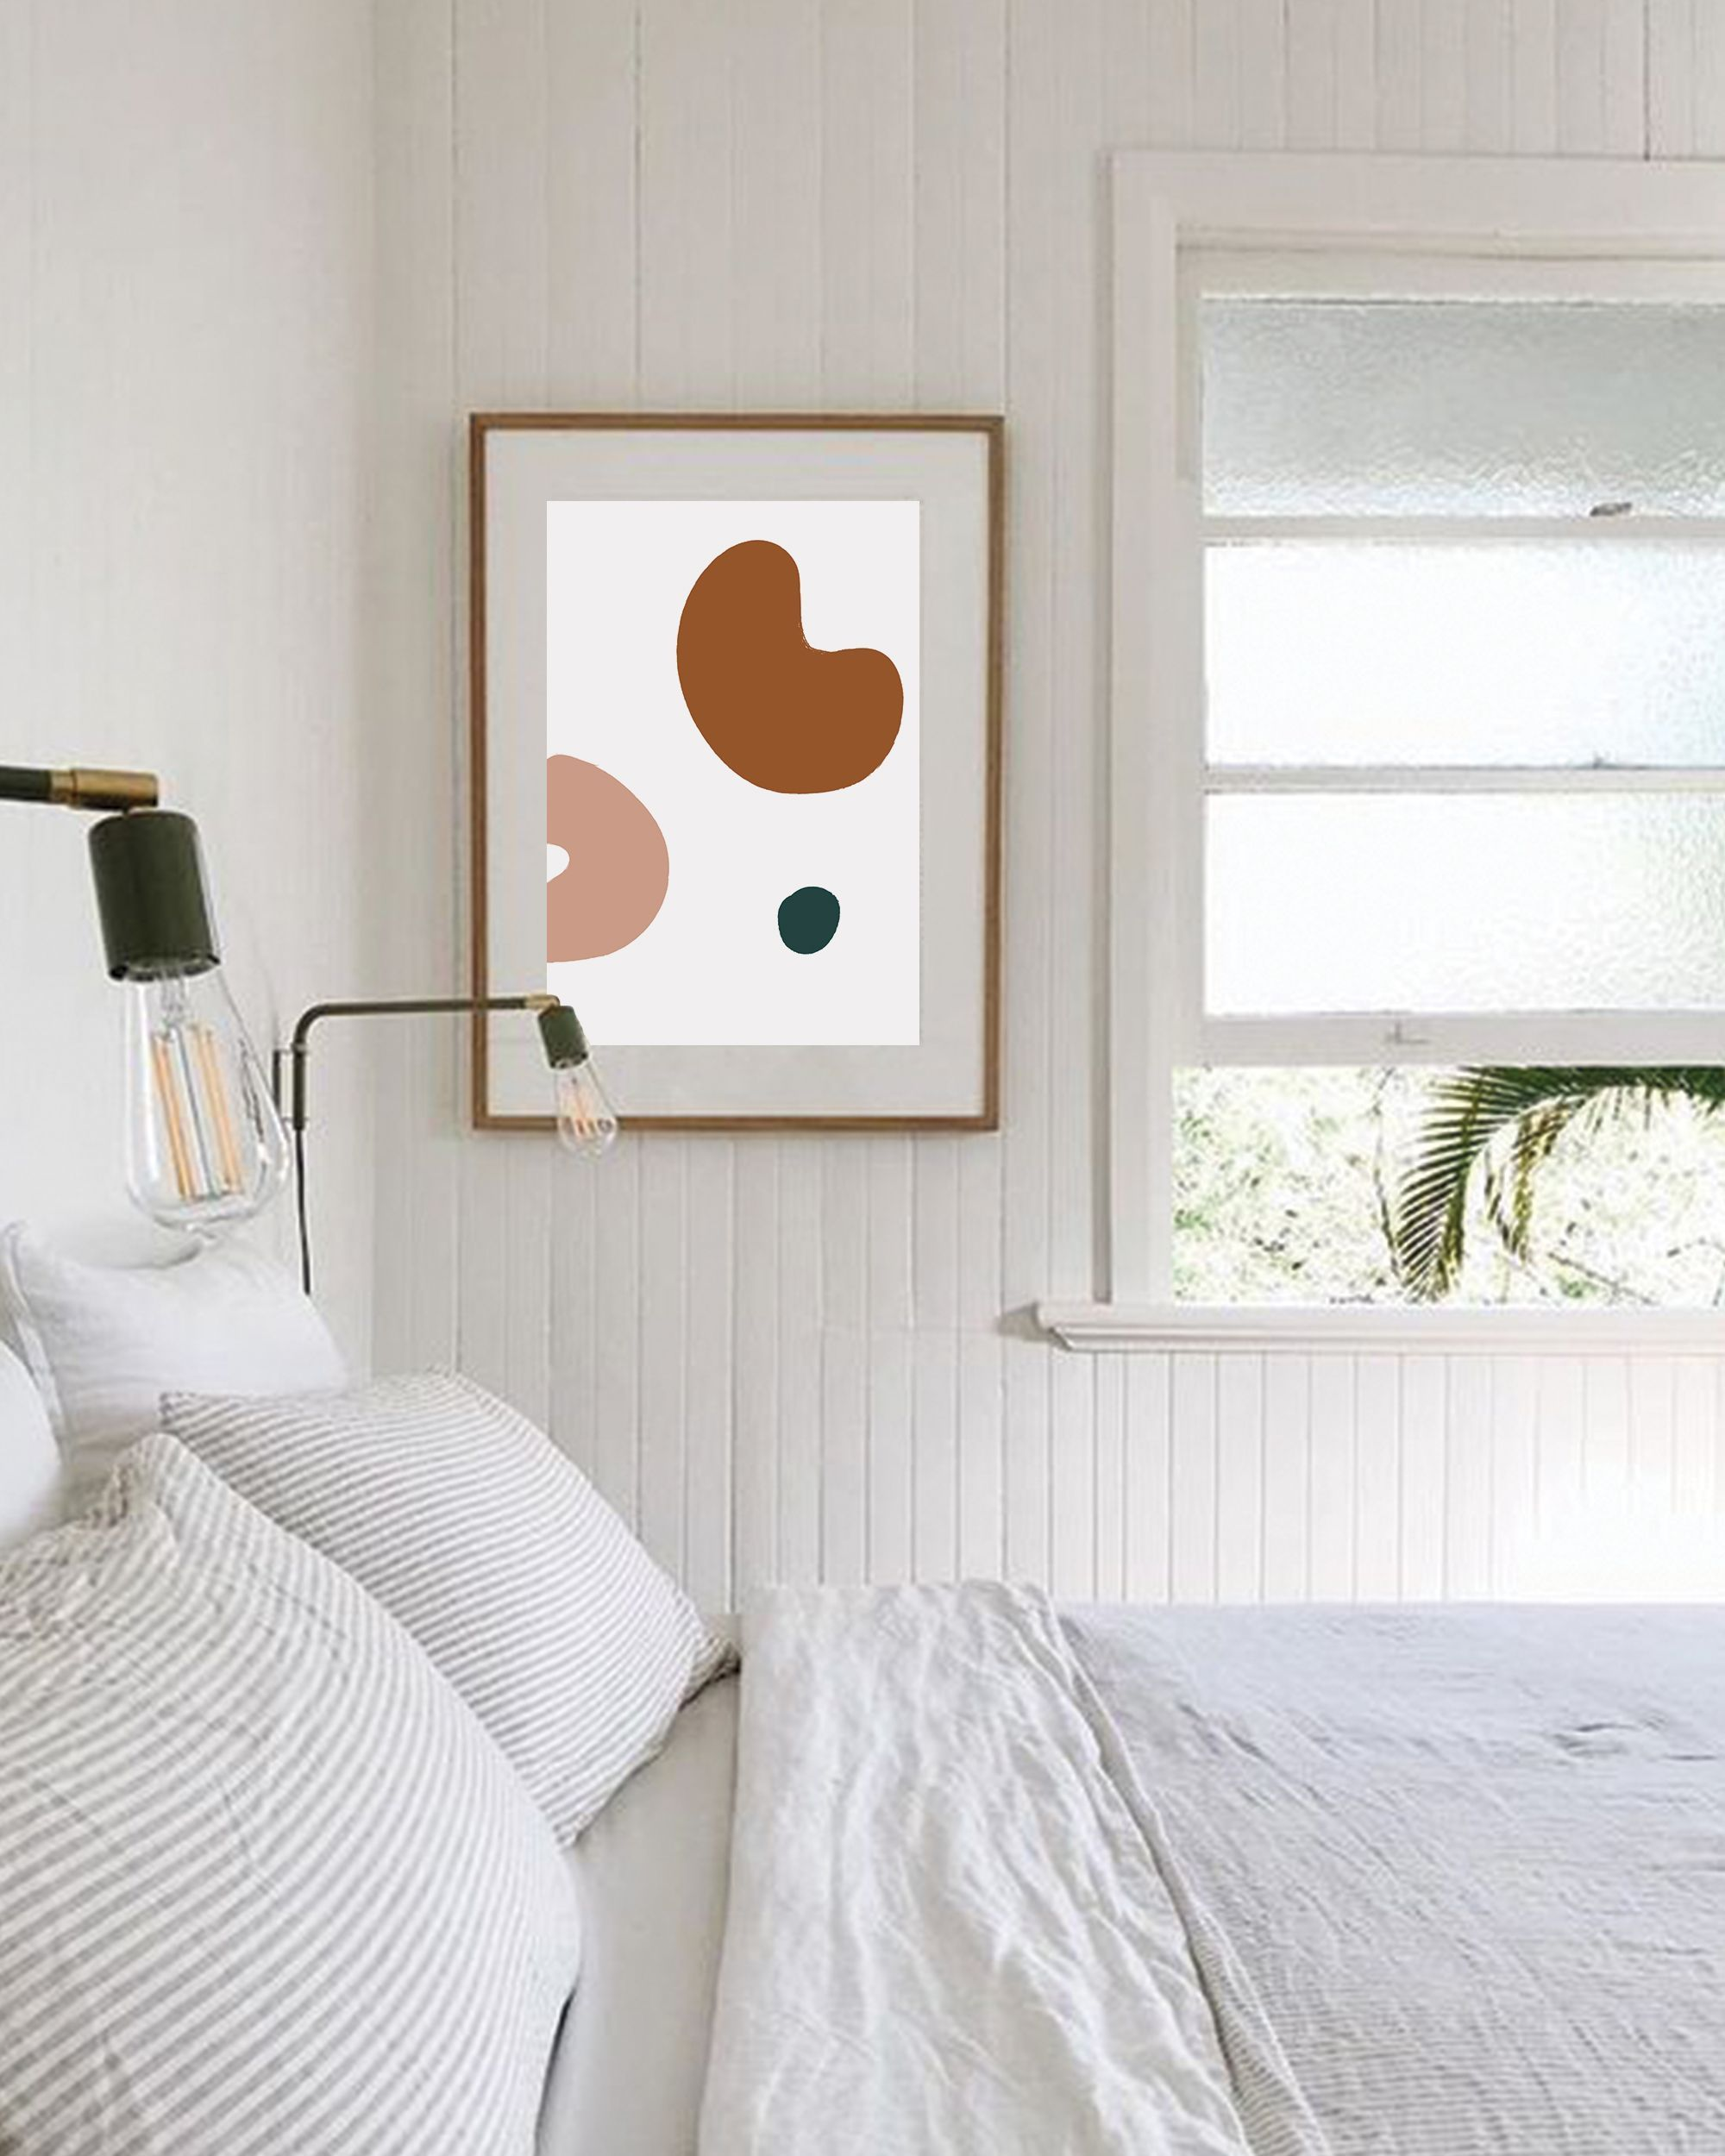 Abstract Mid-Century Modern Bedroom Wall D cor Master ...